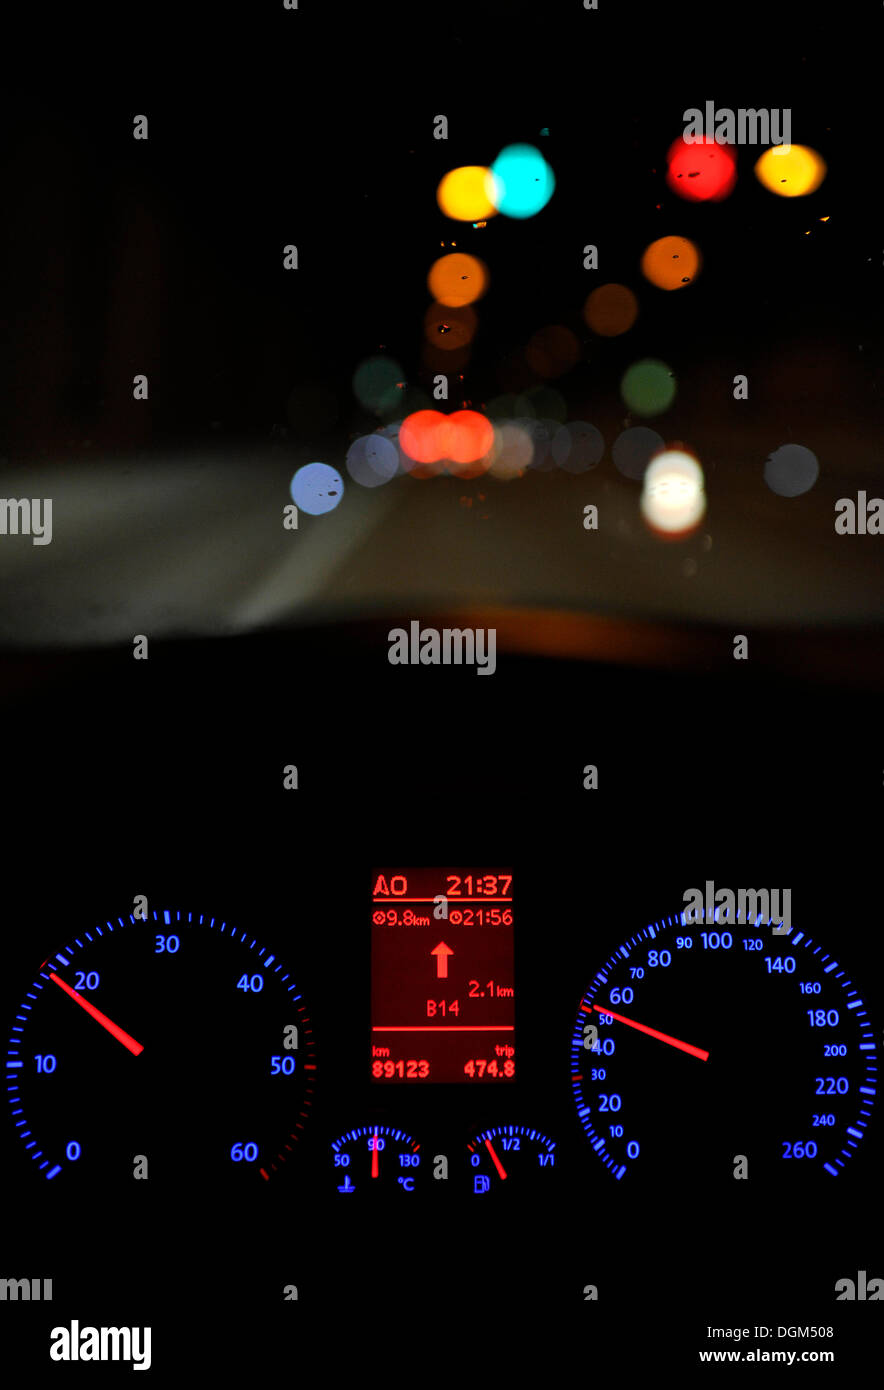 Poor visibility in rain, illuminated speedometer with navigation display, driving VW Golf - Stock Image